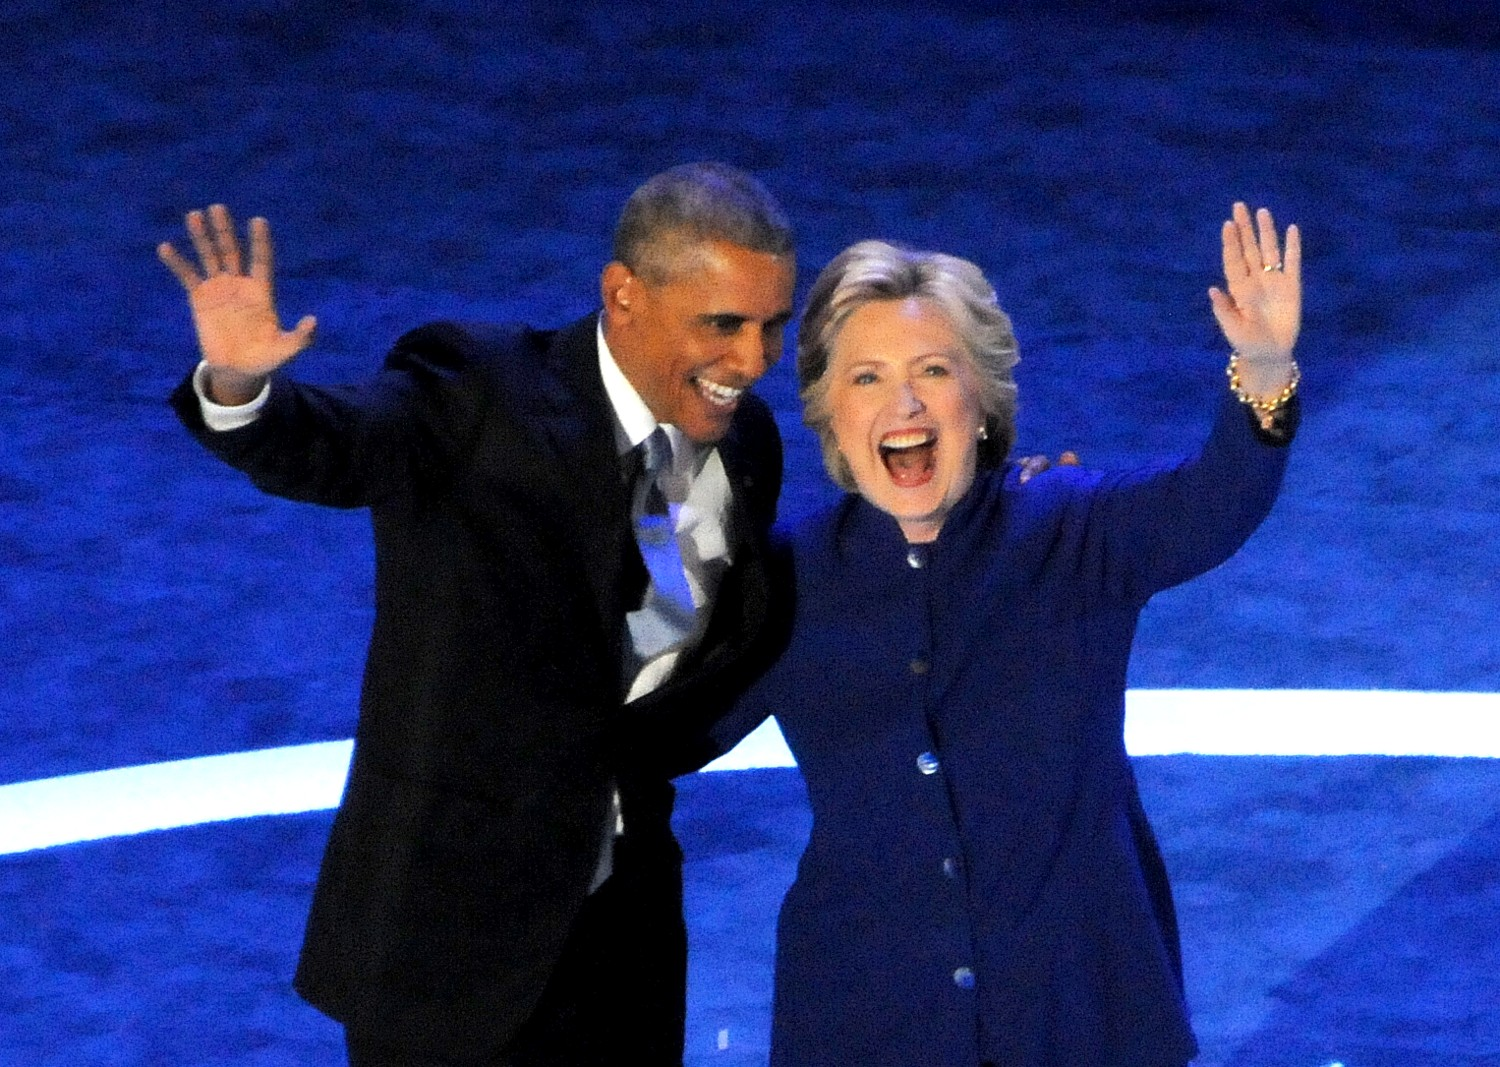 President Obama and Democratic nominee for president Hillary Clinton get thunderous cheers aqt the Democratic National Convention  © 2016 Karen Rubin/newsphotos-features.com